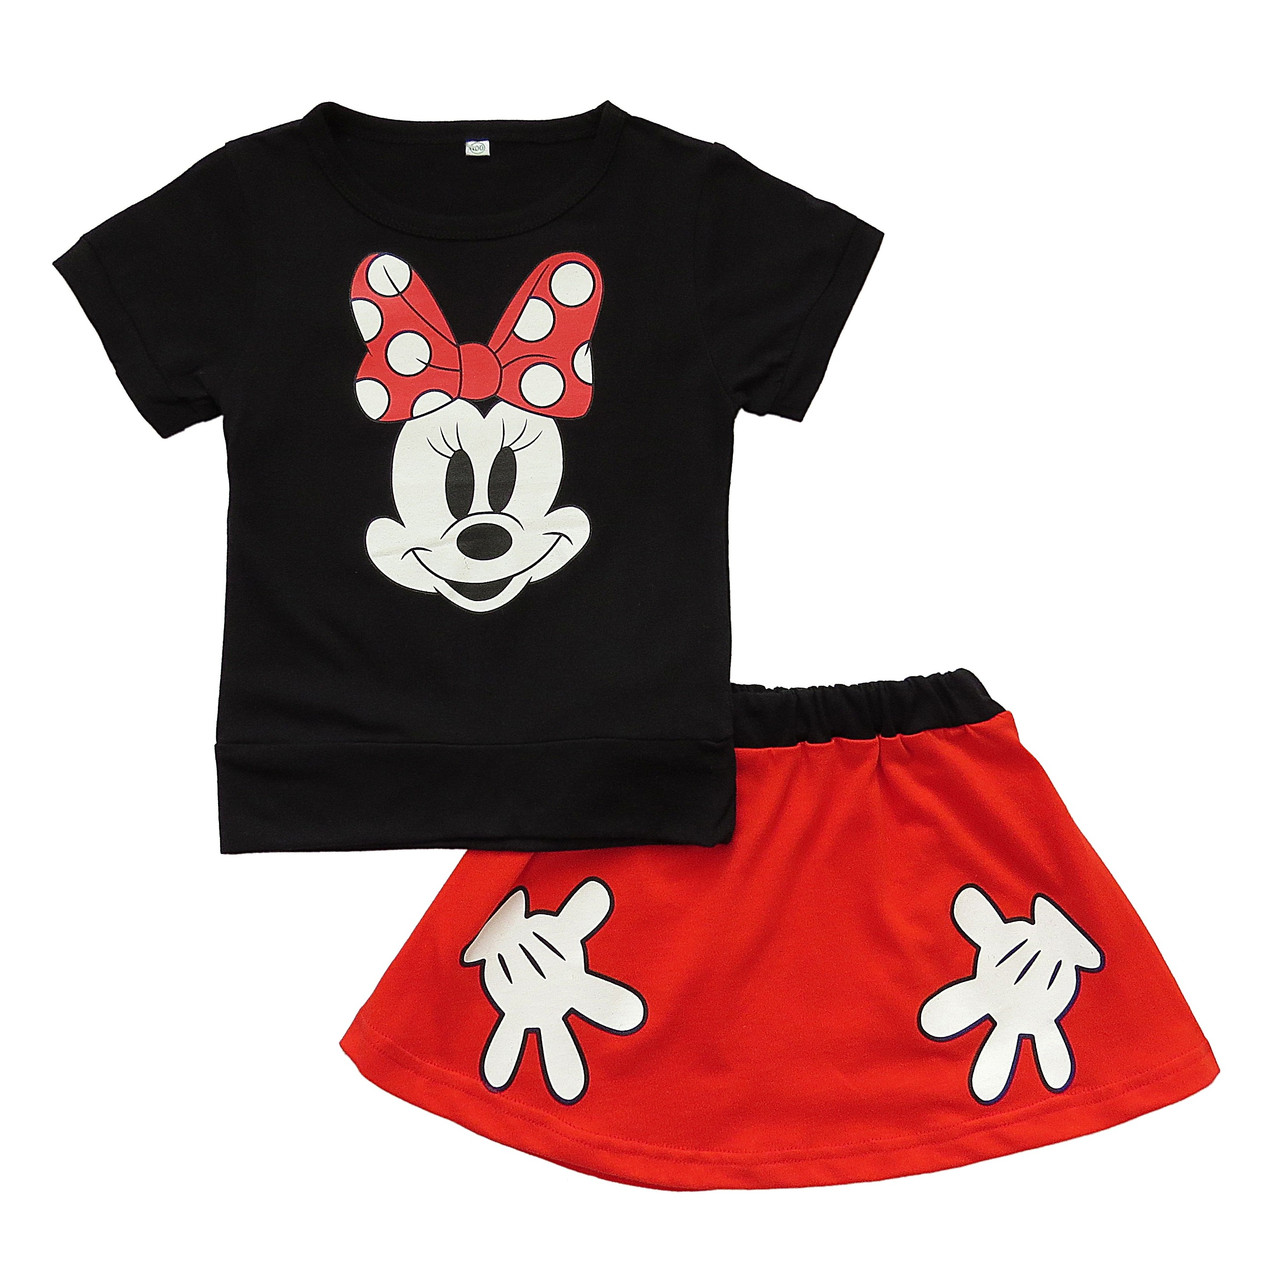 Летний костюм Minnie Mouse для девочки. 110, 120, 130 см